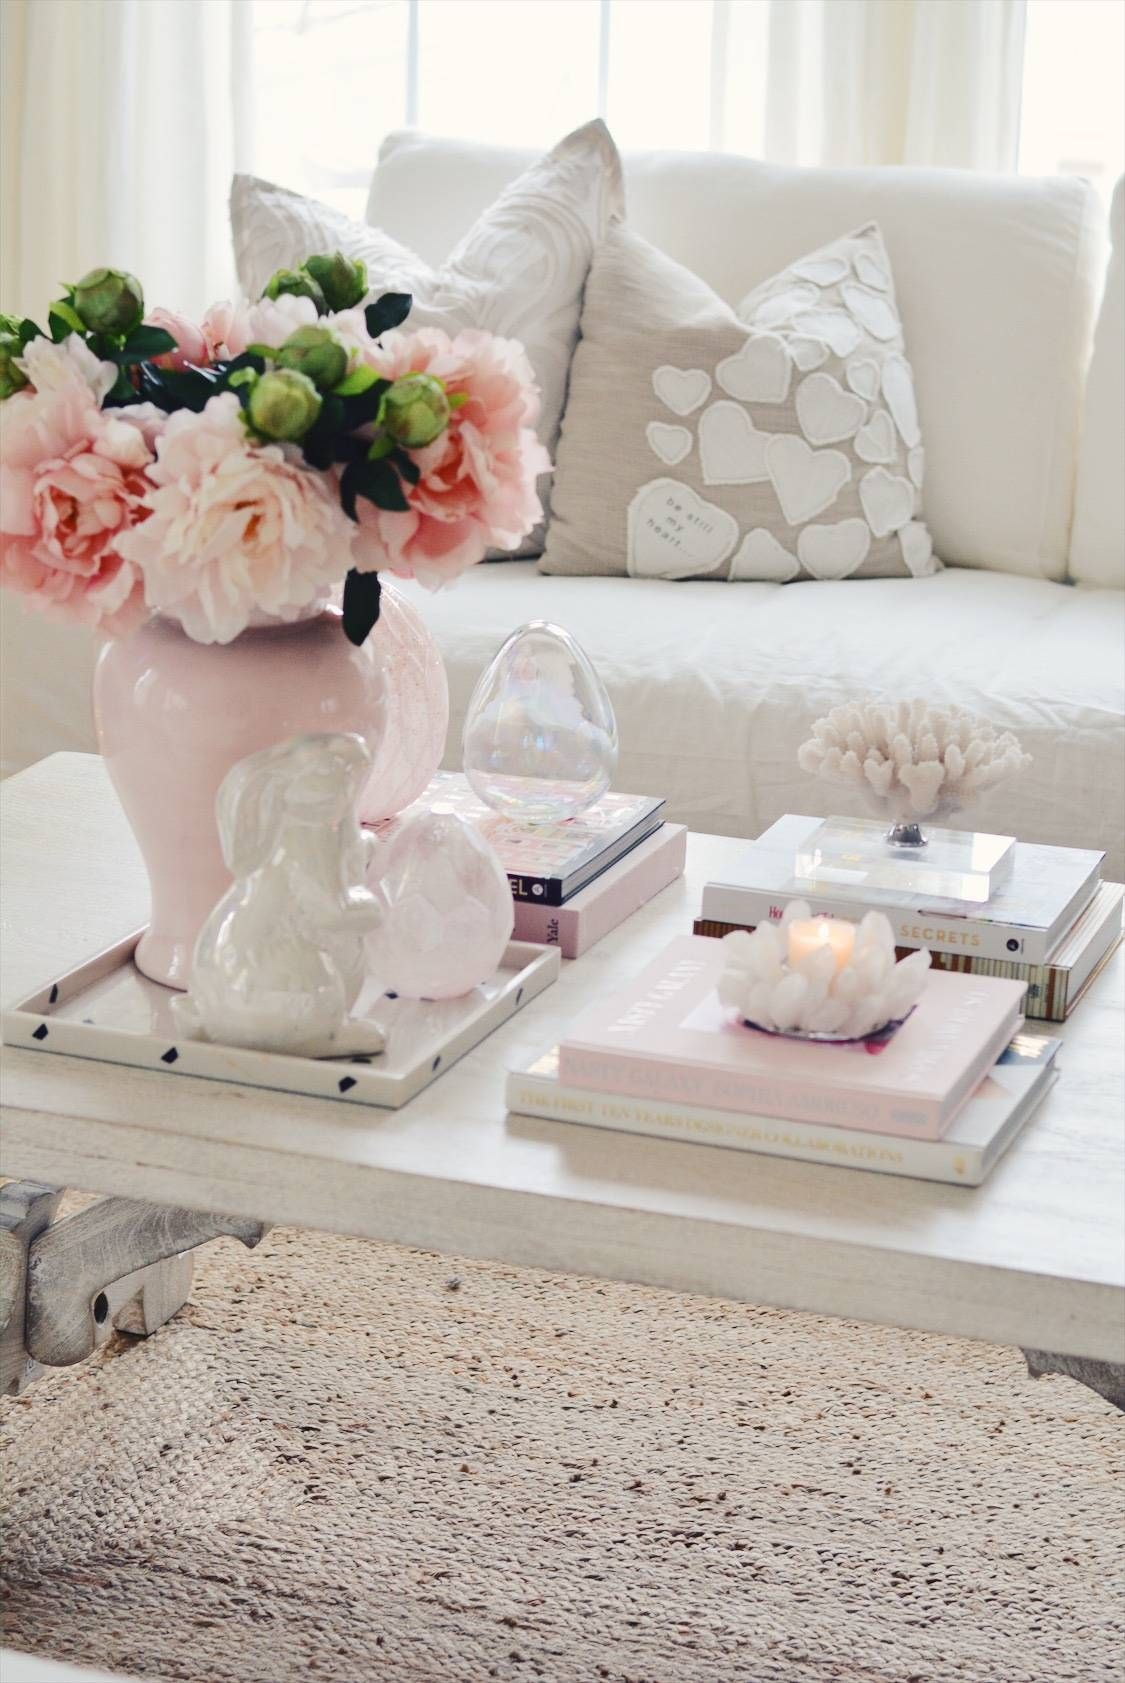 Elegant Spring Home Tour And Easter Decor 2019 The Pink Dream Easter Coffee Table Decor Table Decor Living Room Spring Living Room Decor